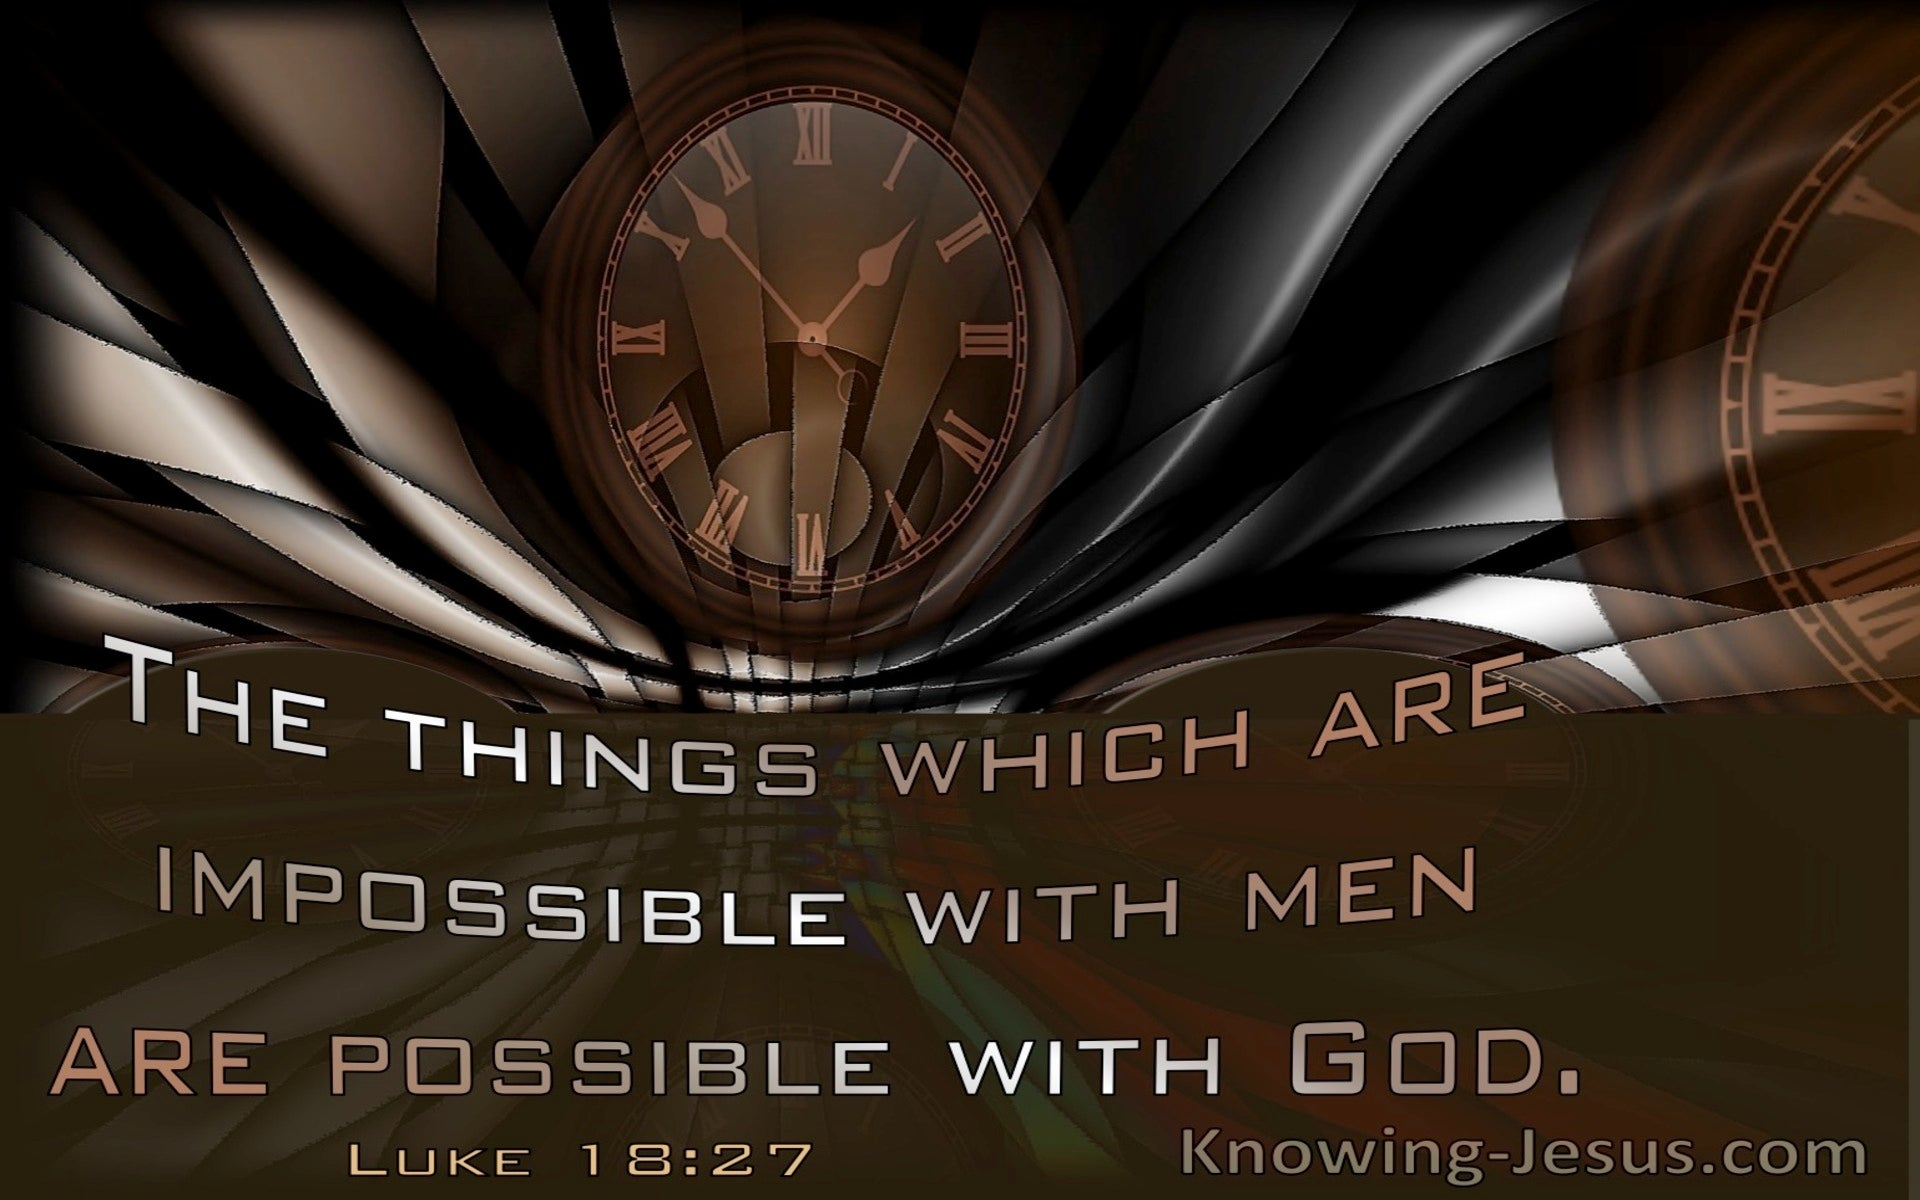 Luke 18:27 The Things Which Are Impossible Are Possible With God (windows)03:07